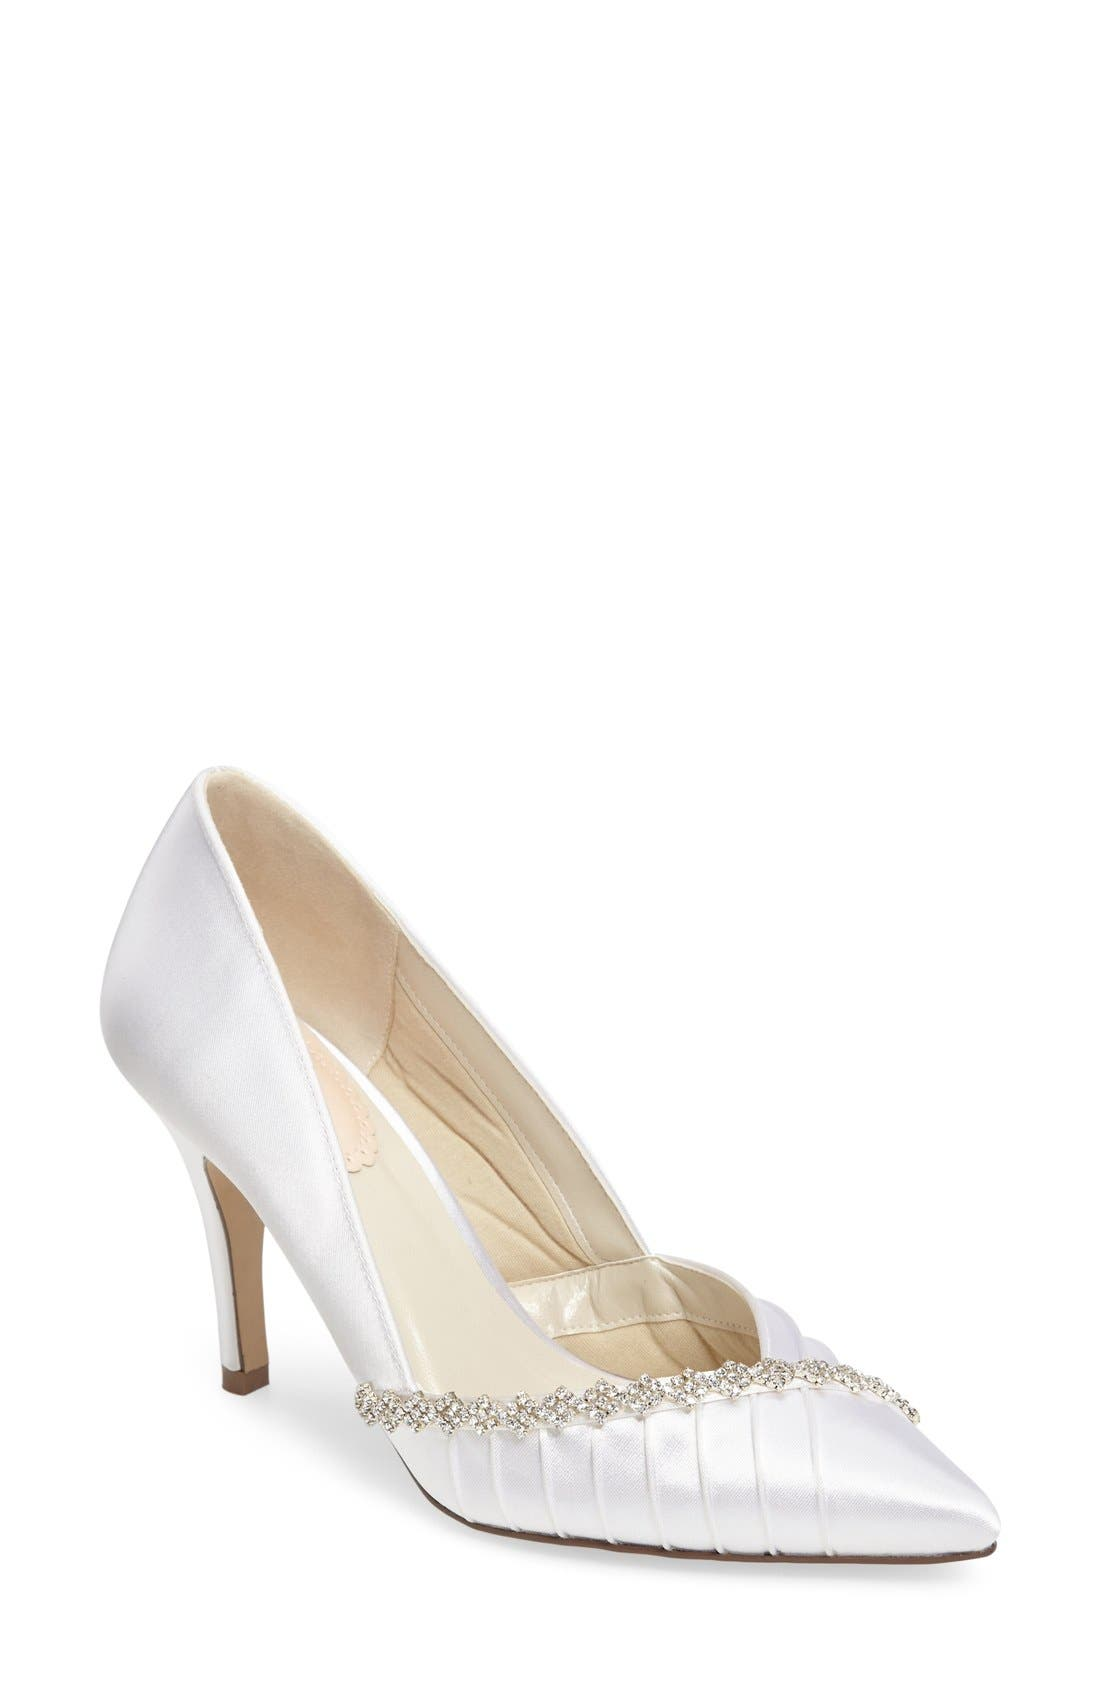 Union Crystal Embellished Pointy Toe Pump,                         Main,                         color, 100